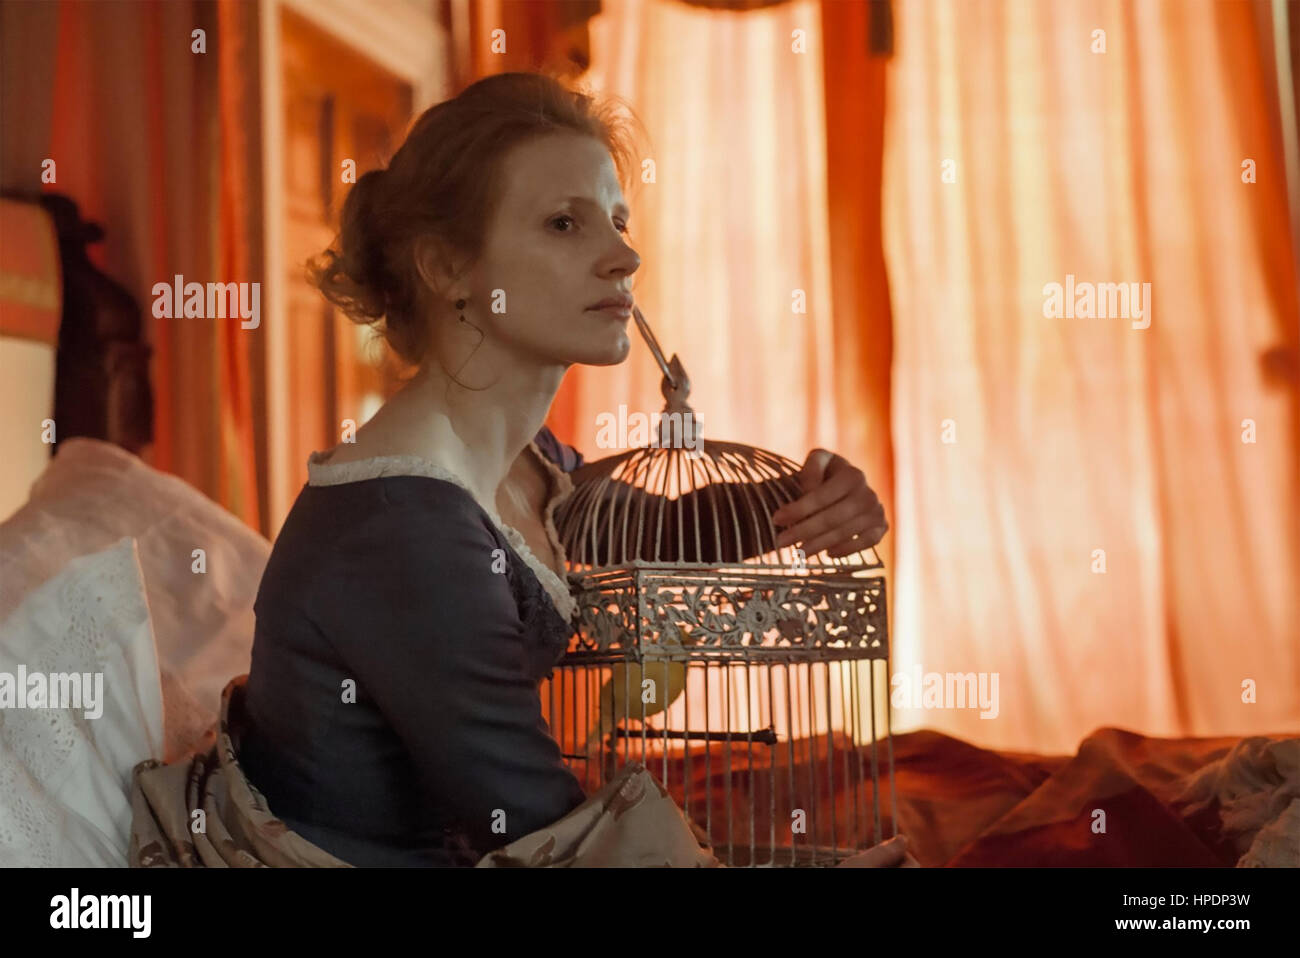 MISS JULIE 2014 Maipo Film production with Jessica Chastain - Stock Image